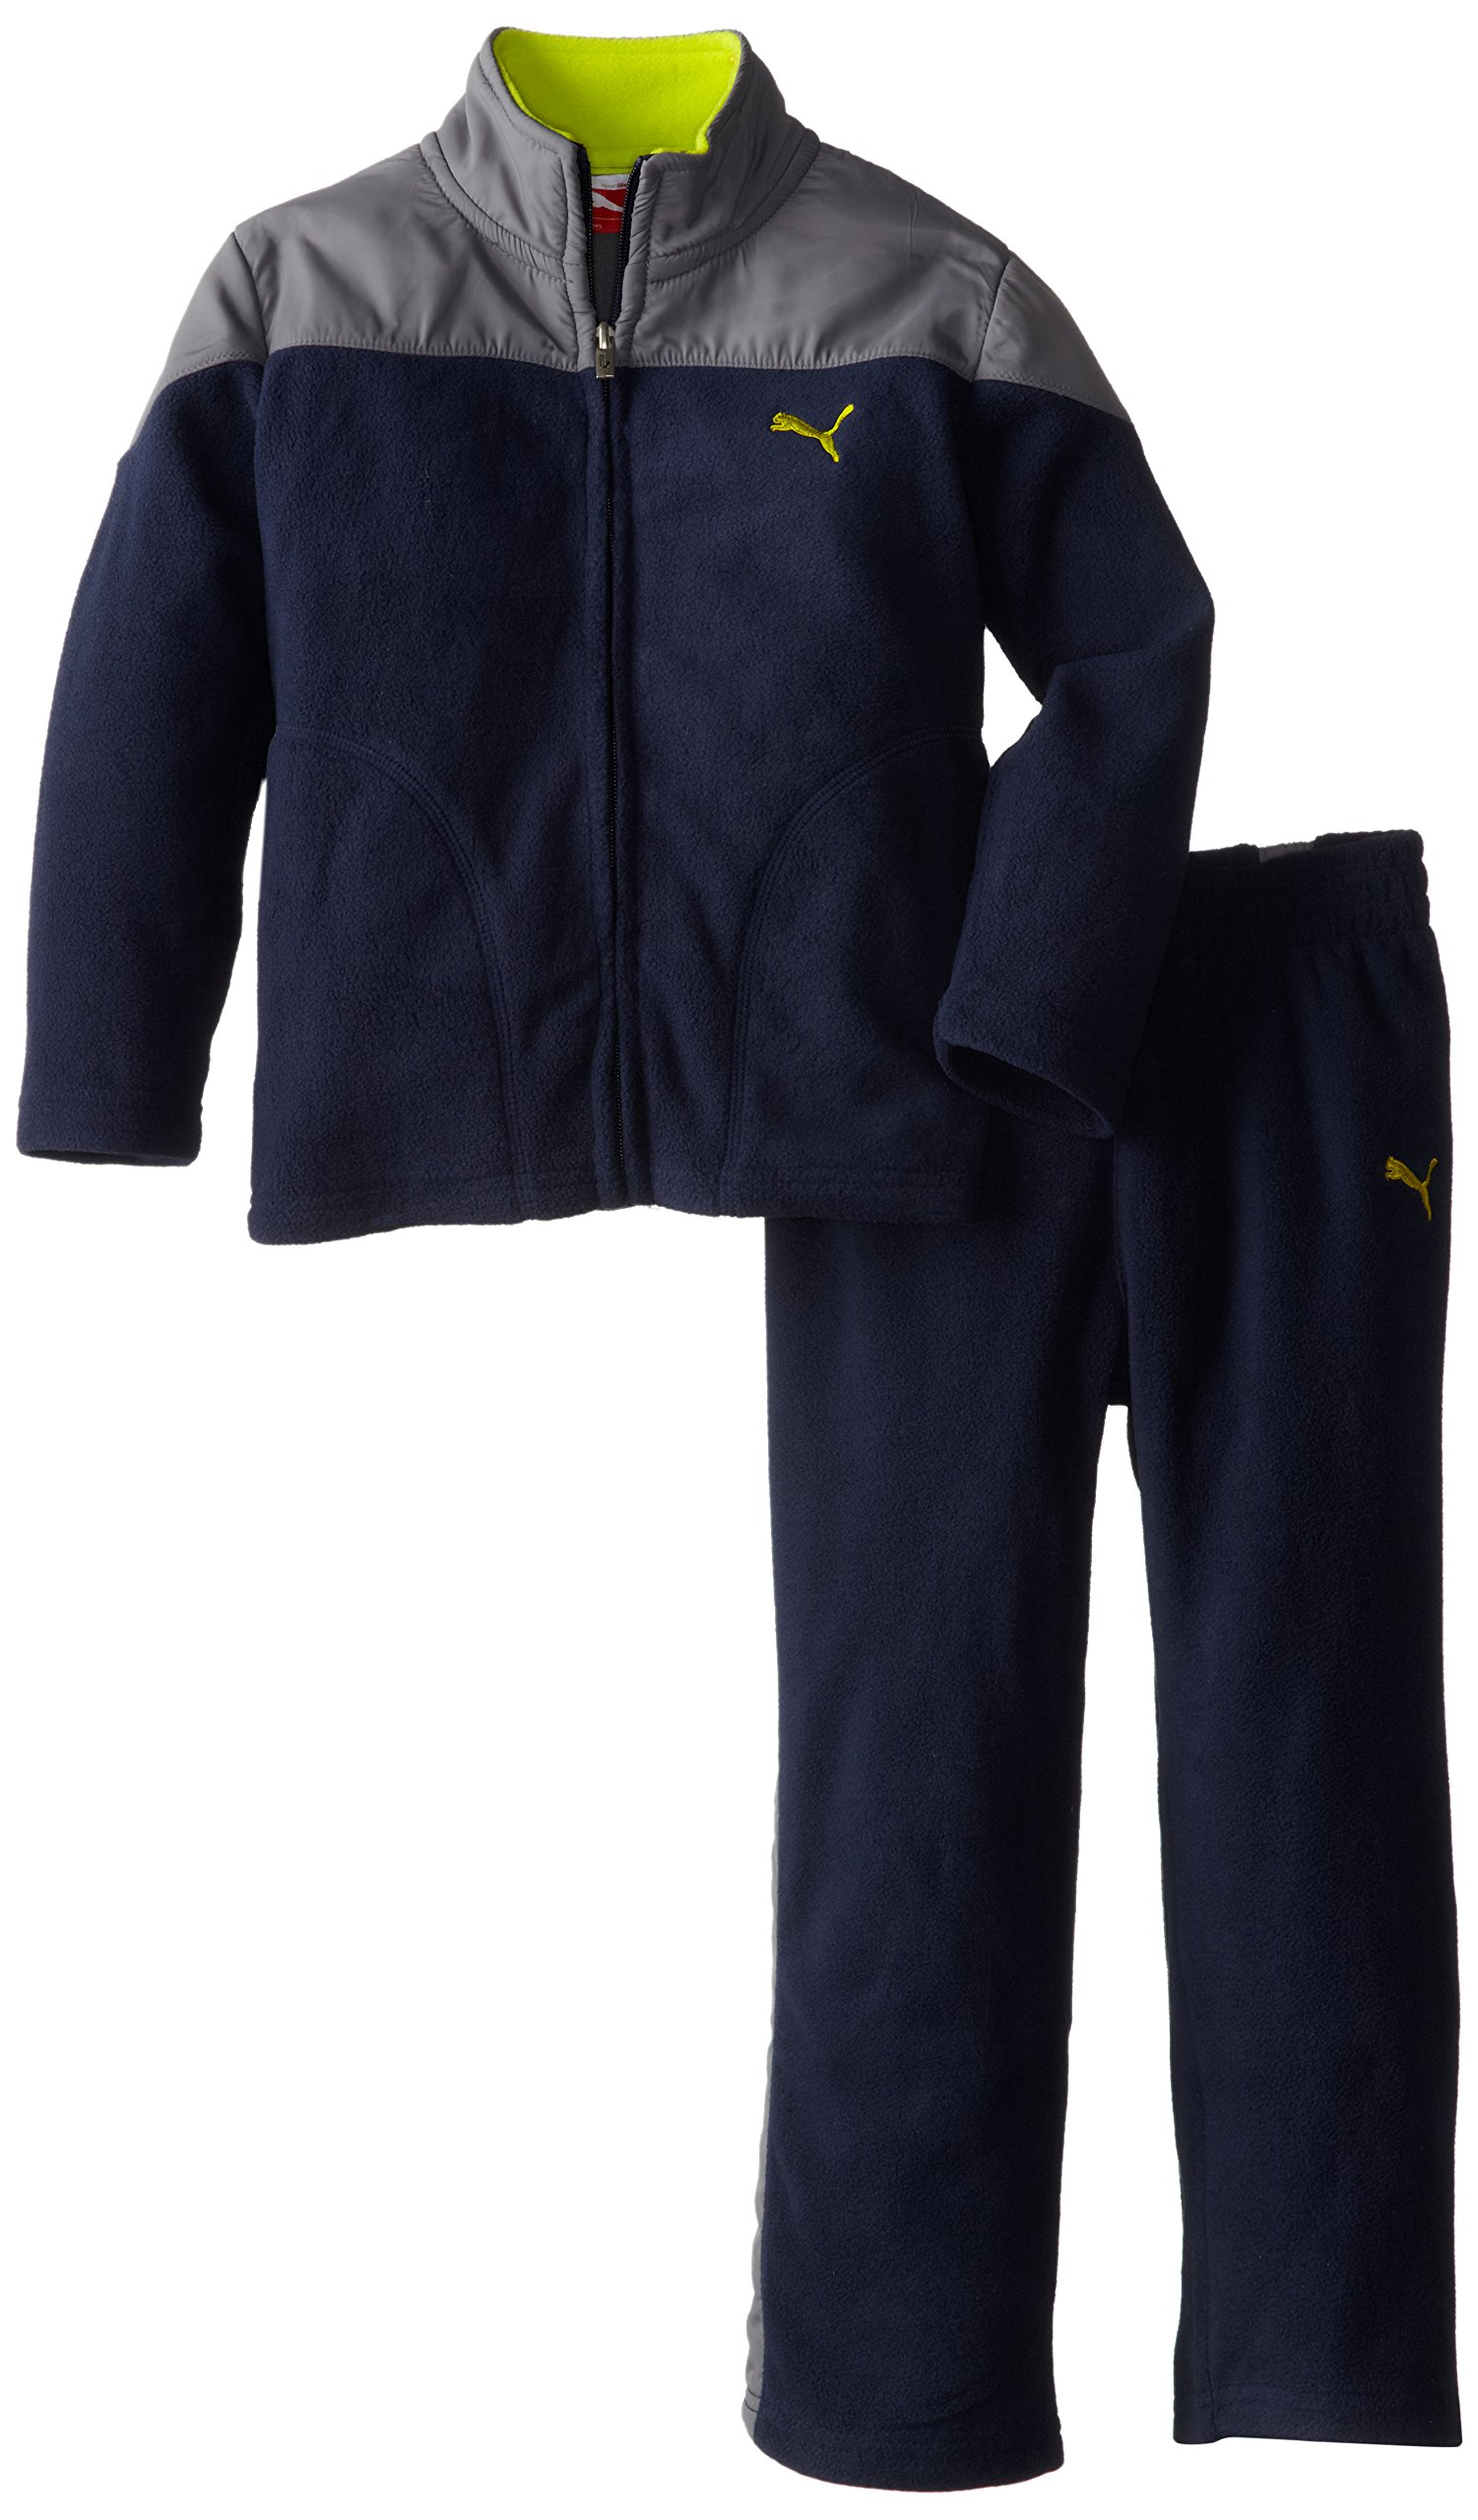 PUMA Little Boys' Curve Polar Fleece Set, Peacoat, 6 by PUMA